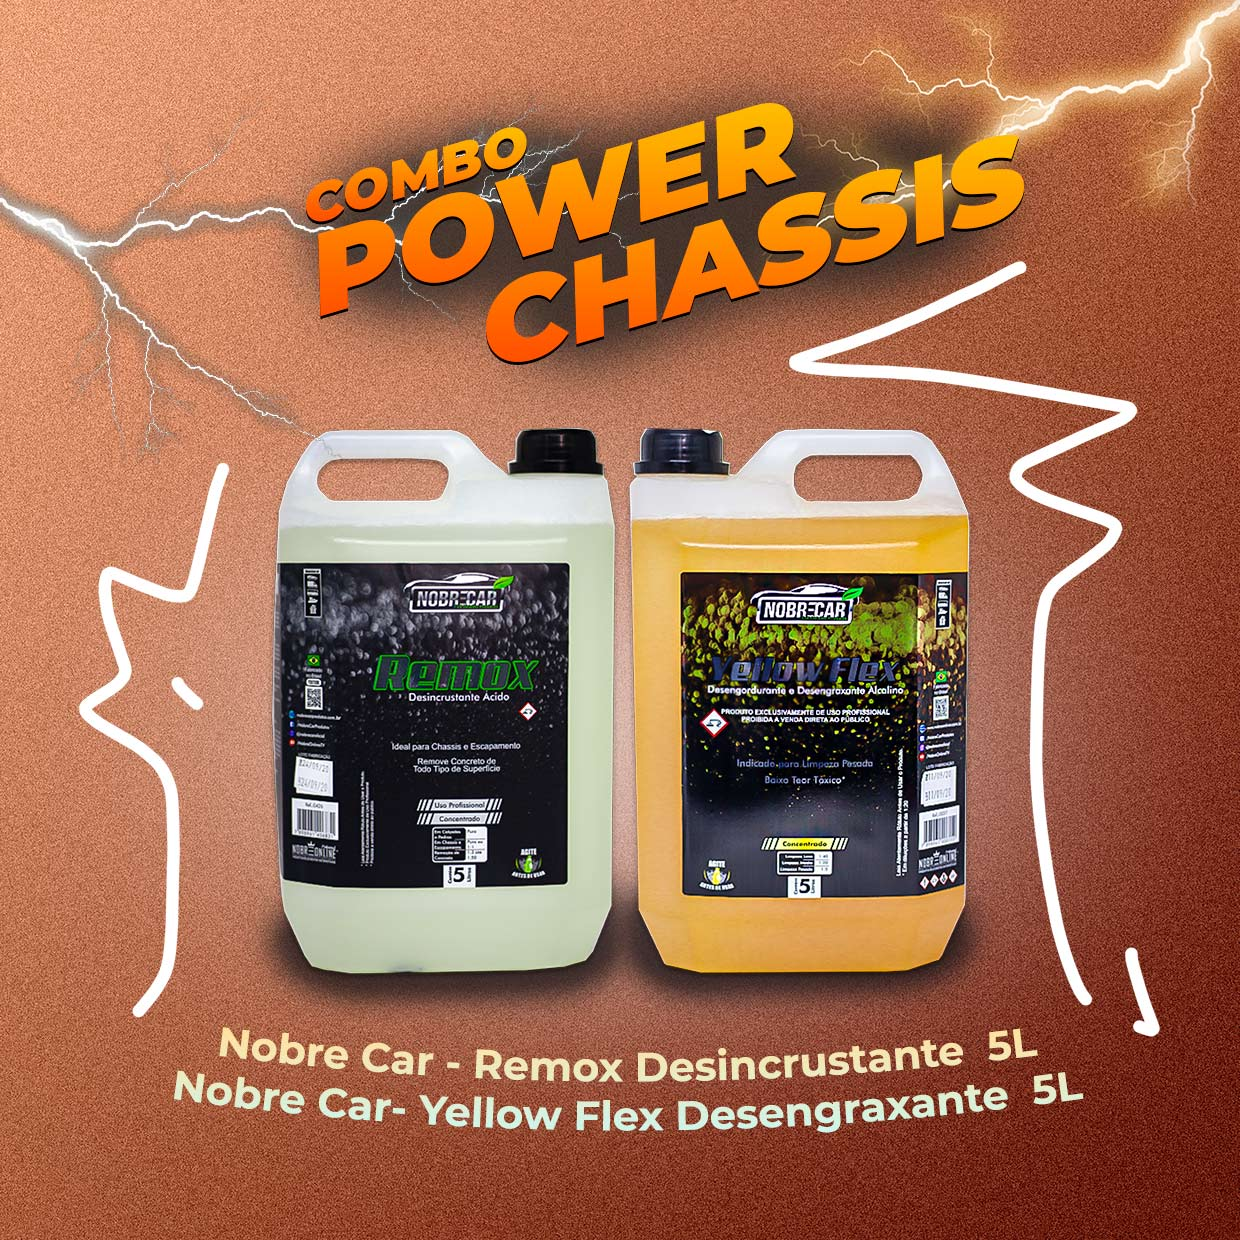 Combo Power Chassis Nobre Car